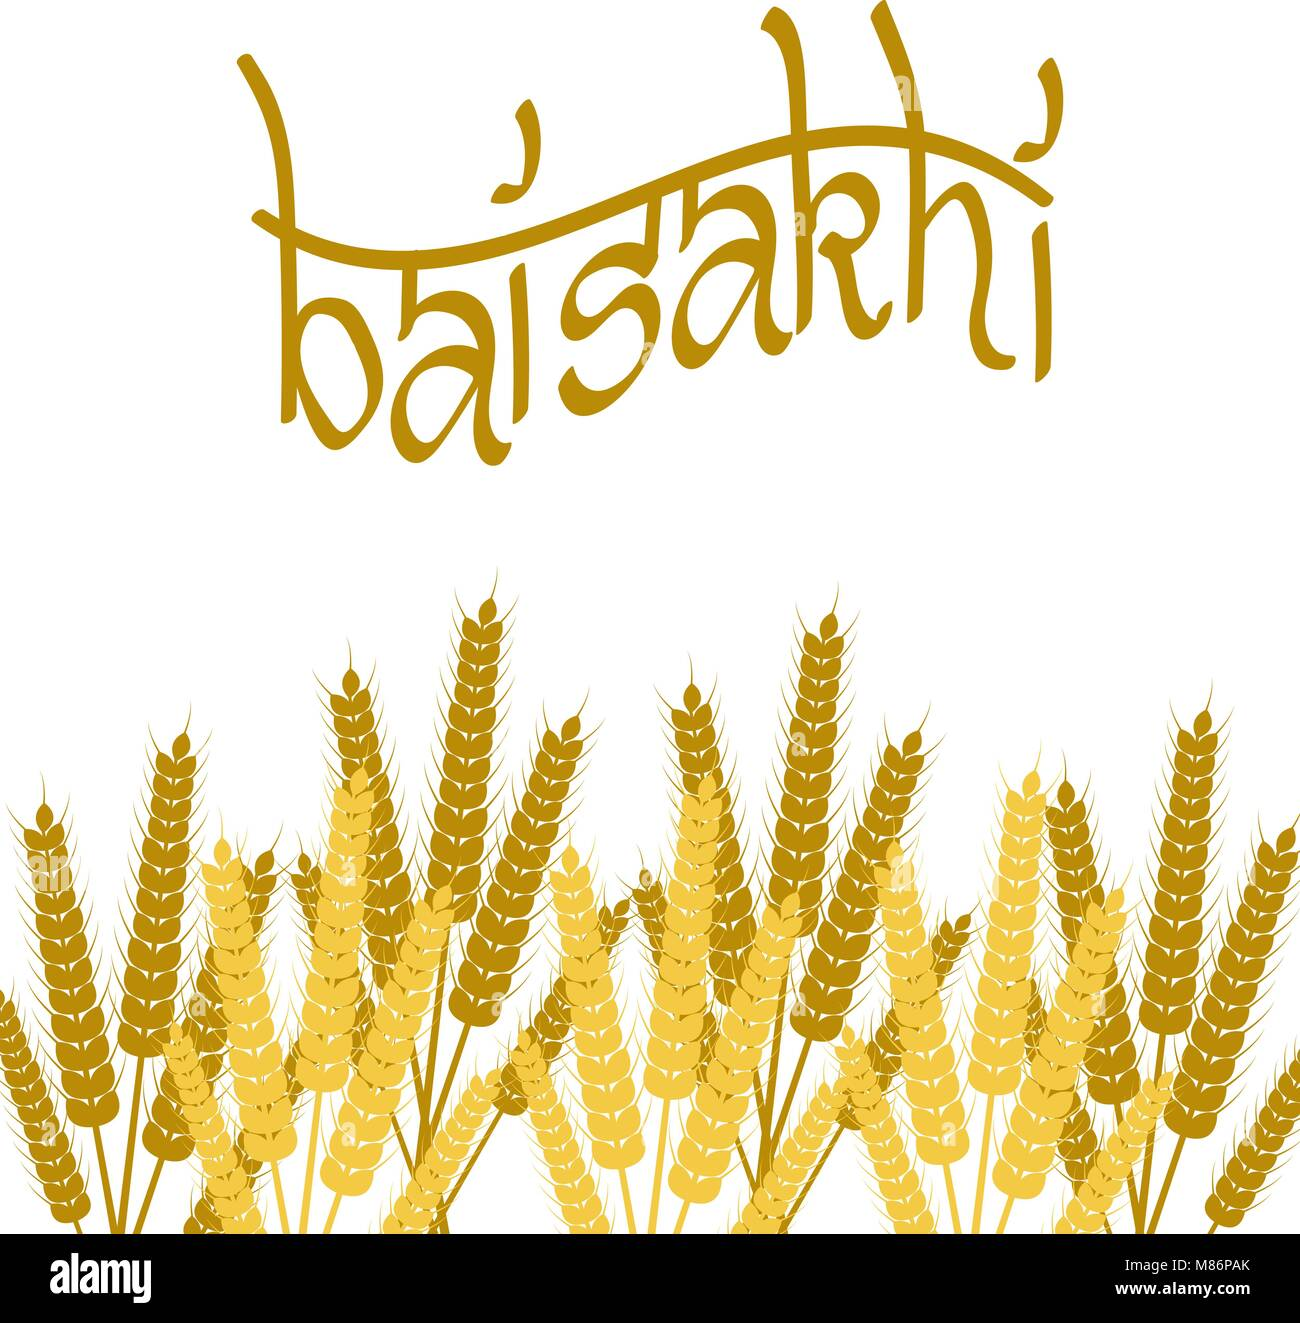 Holiday Baisakhi. New Year of the Sikhs. Bunchs of Wheat. Lettering name of the holiday - Stock Vector